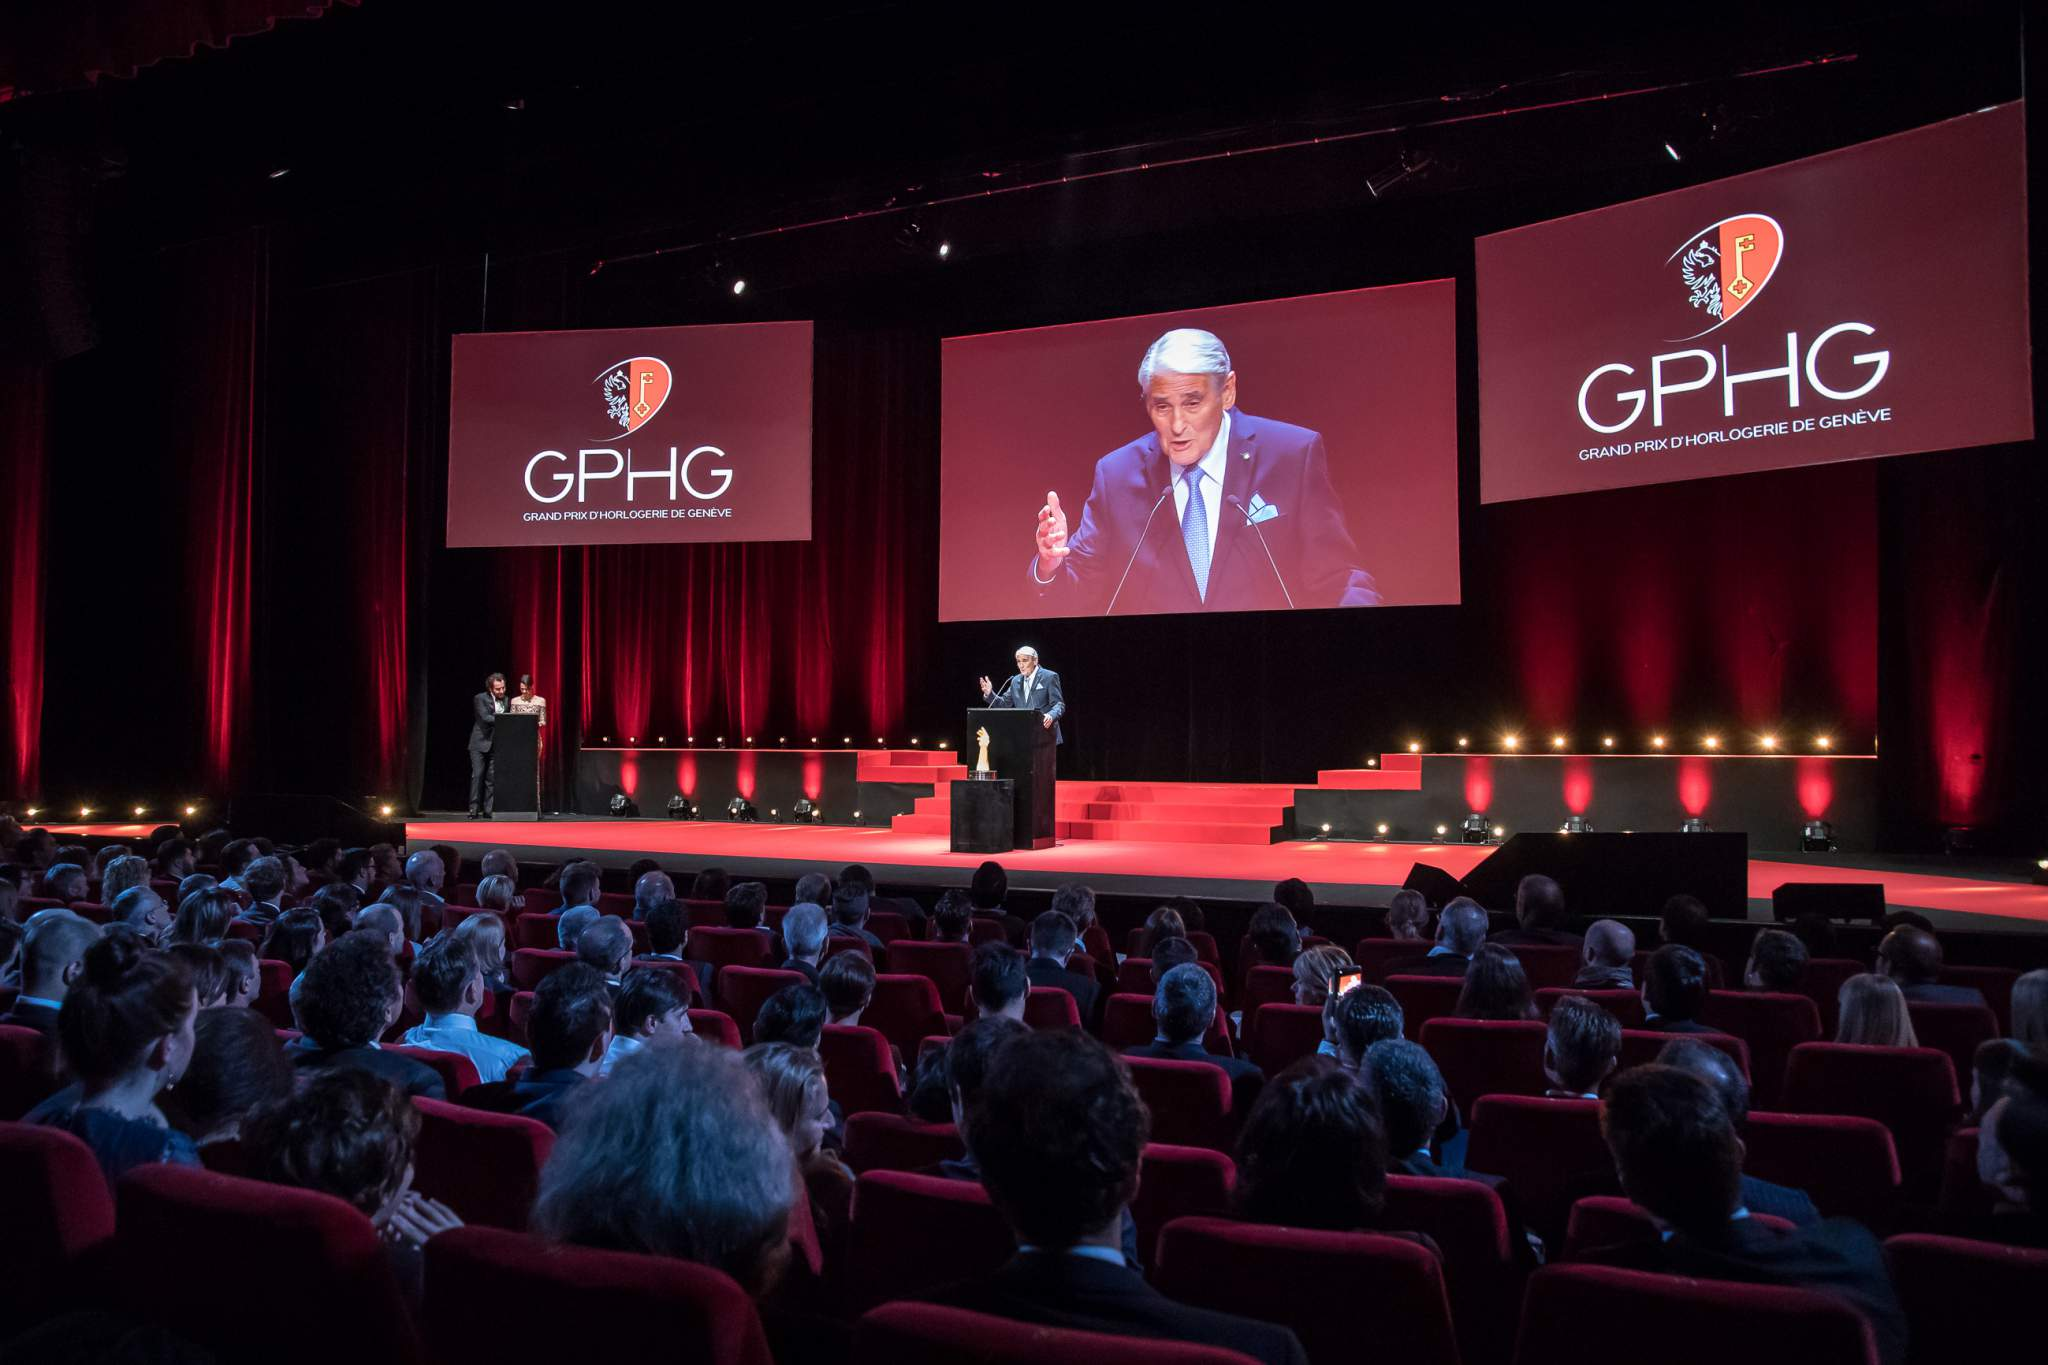 Carlo Lamprecht (President of the GPHG Foundation)